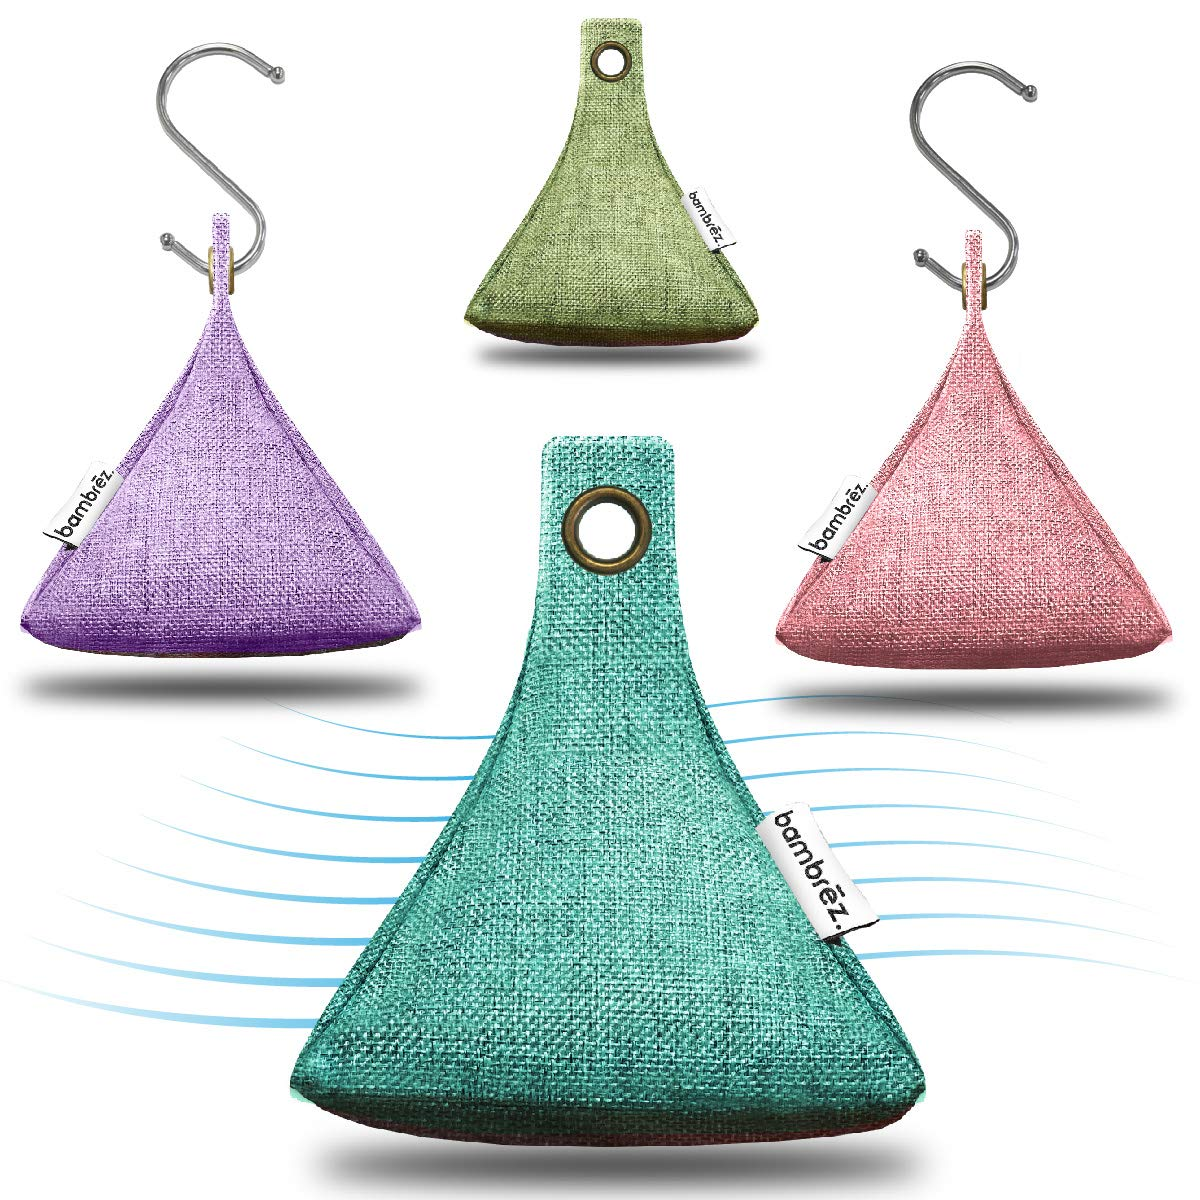 Bambrez Activated Moso Bamboo Charcoal air purifier hanging hook bags natural freshener odor deodorizer cleaner for car home kitchen bath baby pet mold toxins 4 x 200 Gram 4 Pack - Summer Collection Weefab